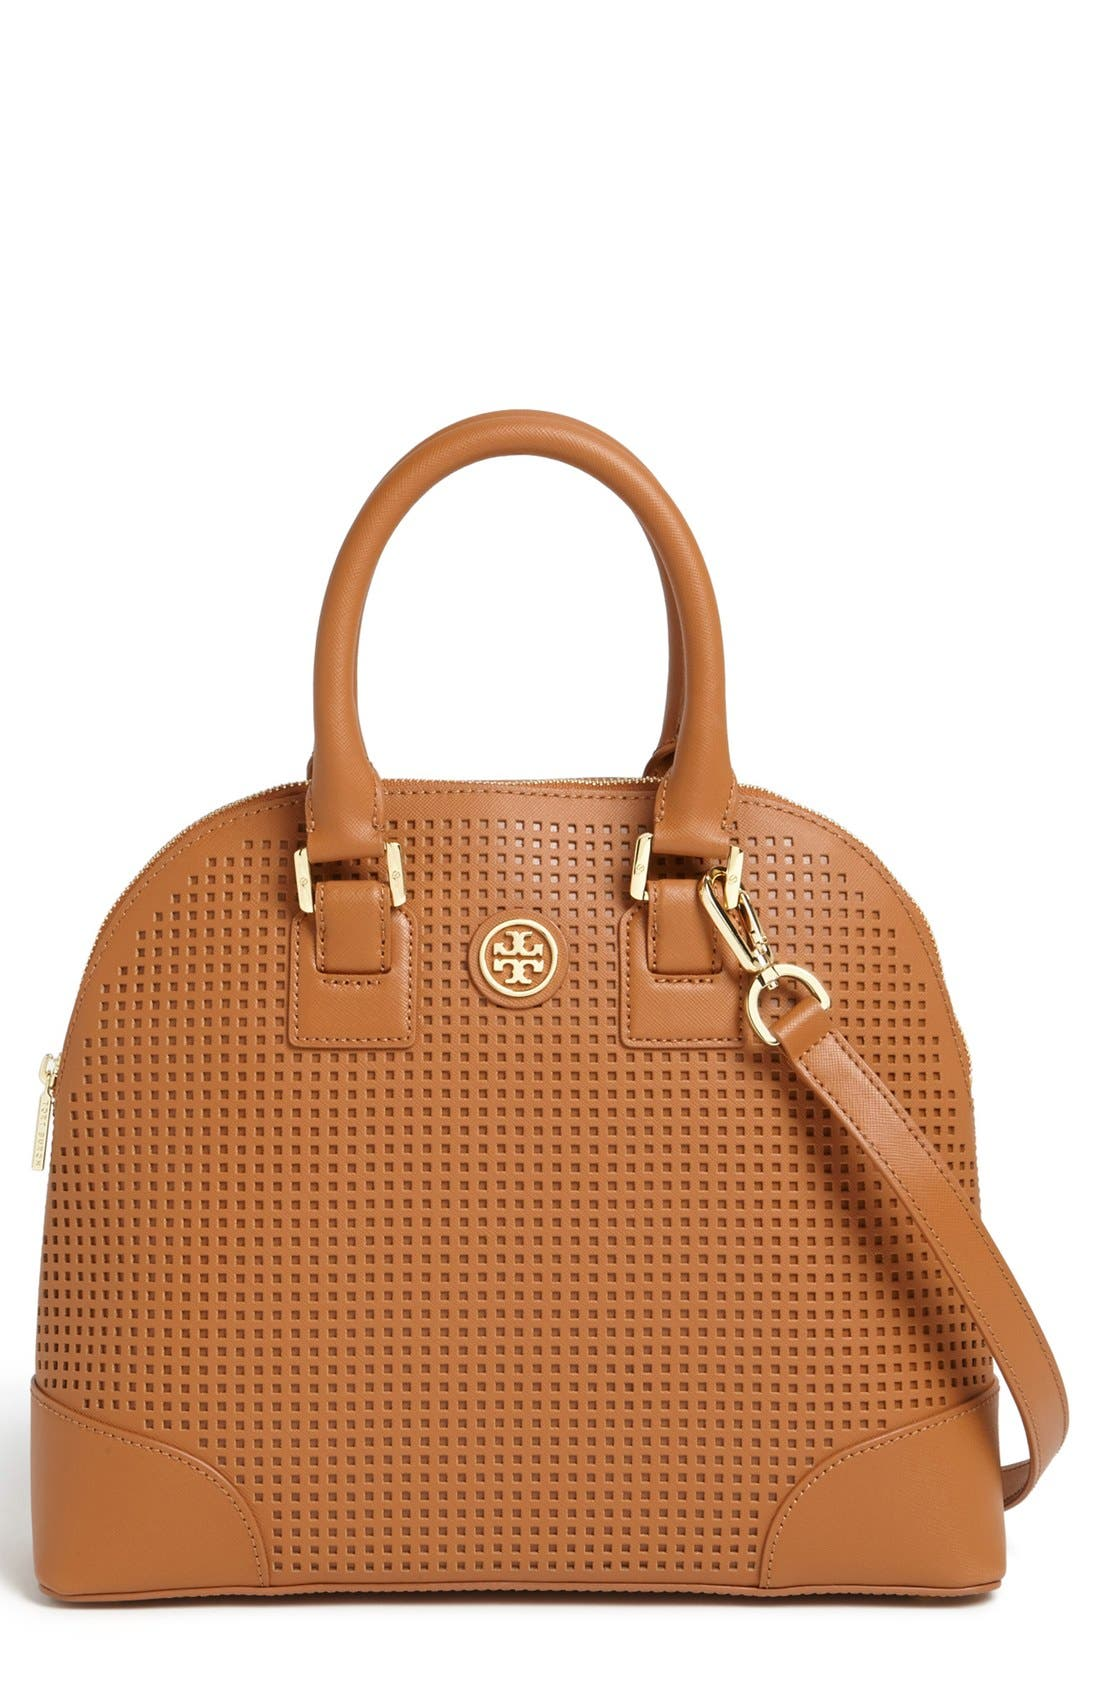 Alternate Image 1 Selected - Tory Burch 'Robinson' Perforated Leather Dome Satchel